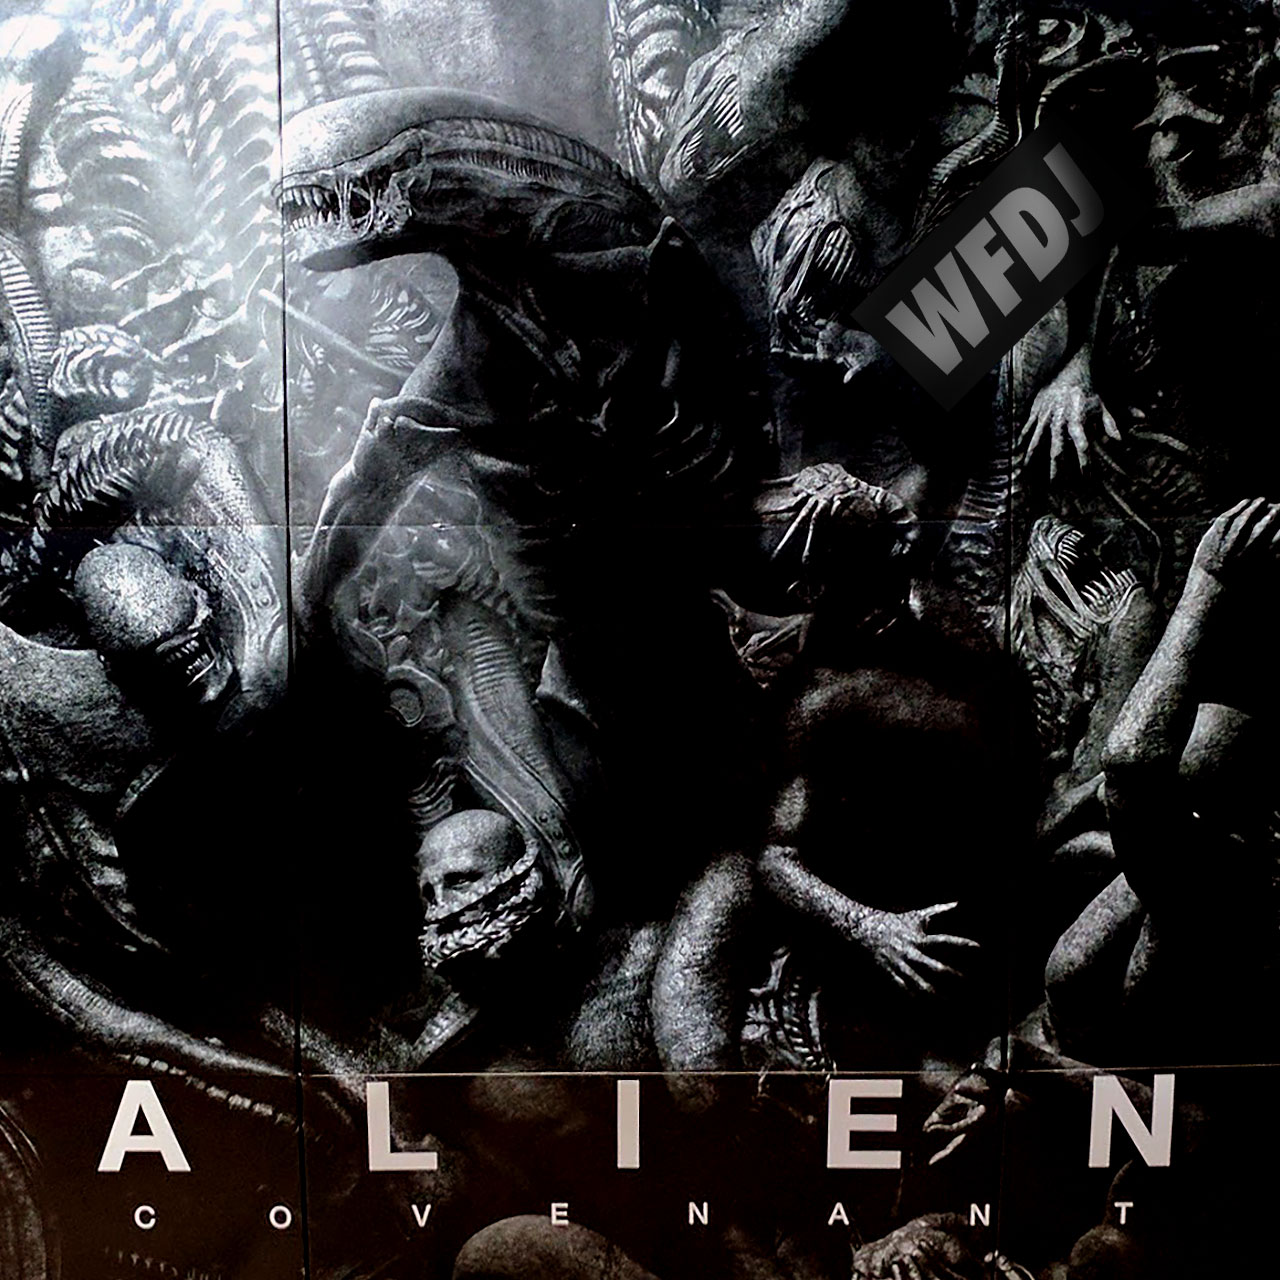 ALIEN Covenant Theater Display